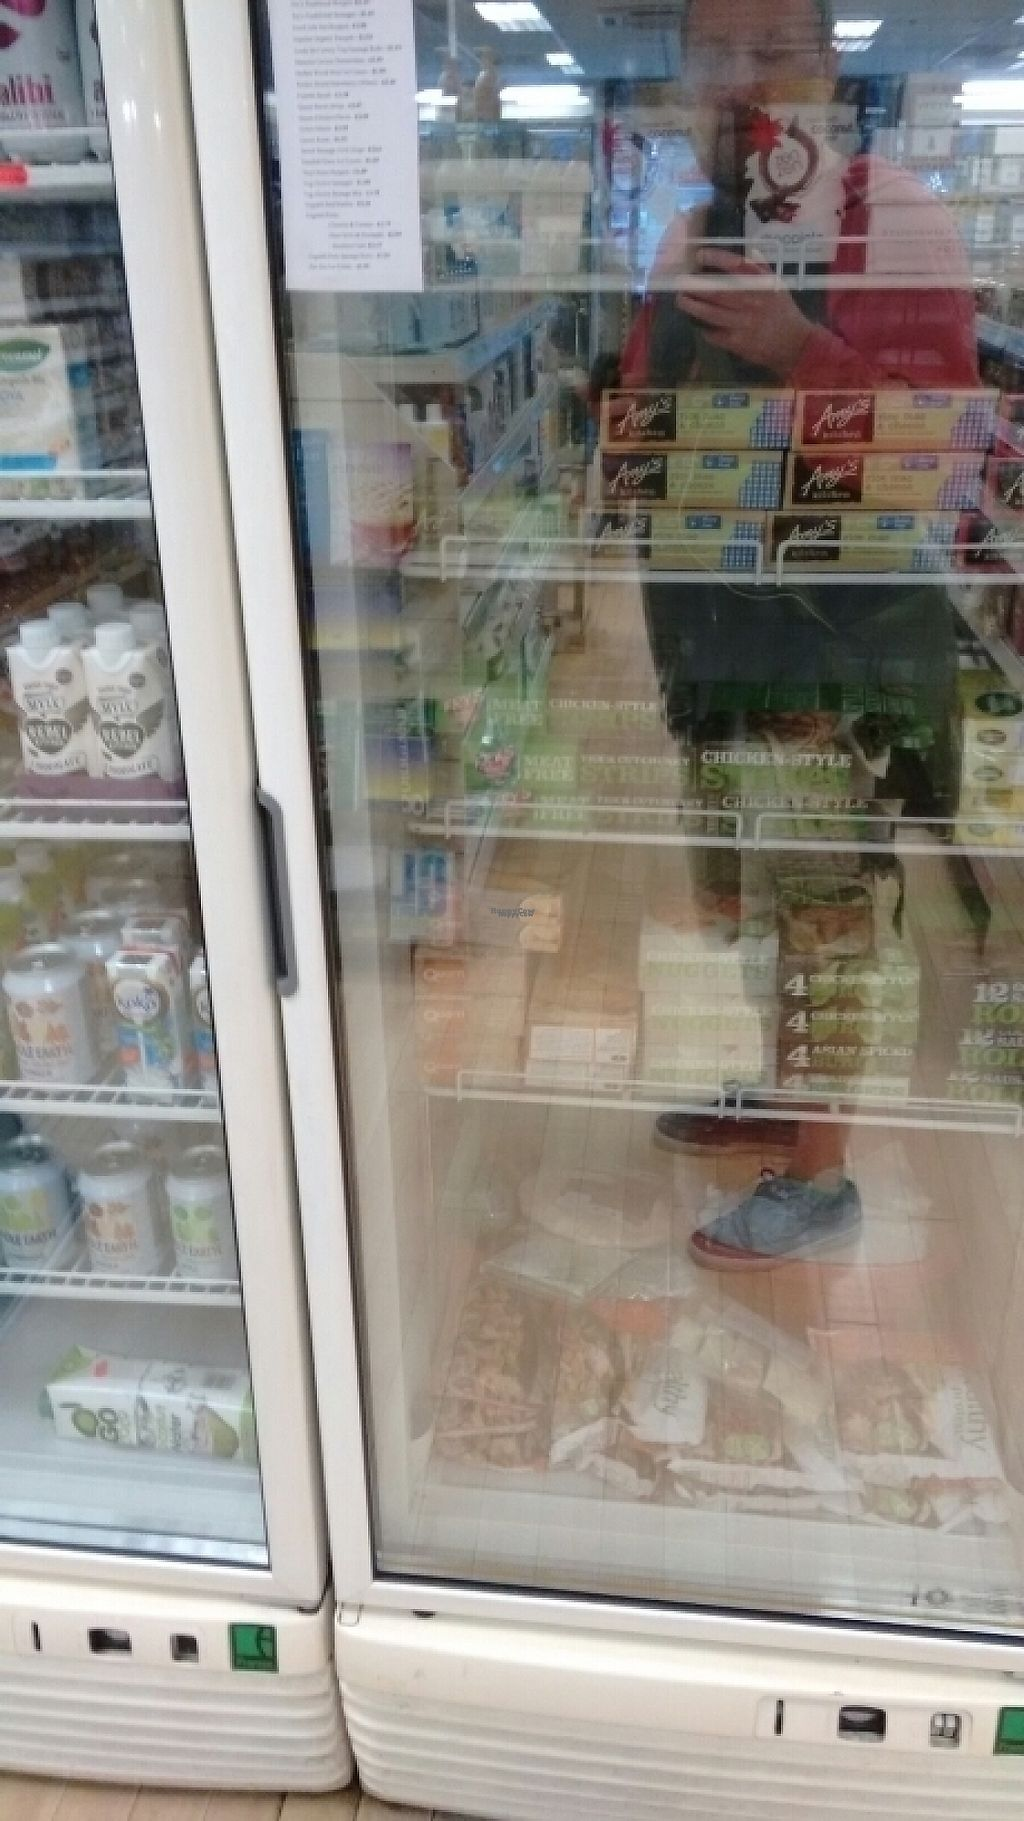 """Photo of The Health Store  by <a href=""""/members/profile/craigmc"""">craigmc</a> <br/>freezer <br/> November 19, 2016  - <a href='/contact/abuse/image/32642/192098'>Report</a>"""